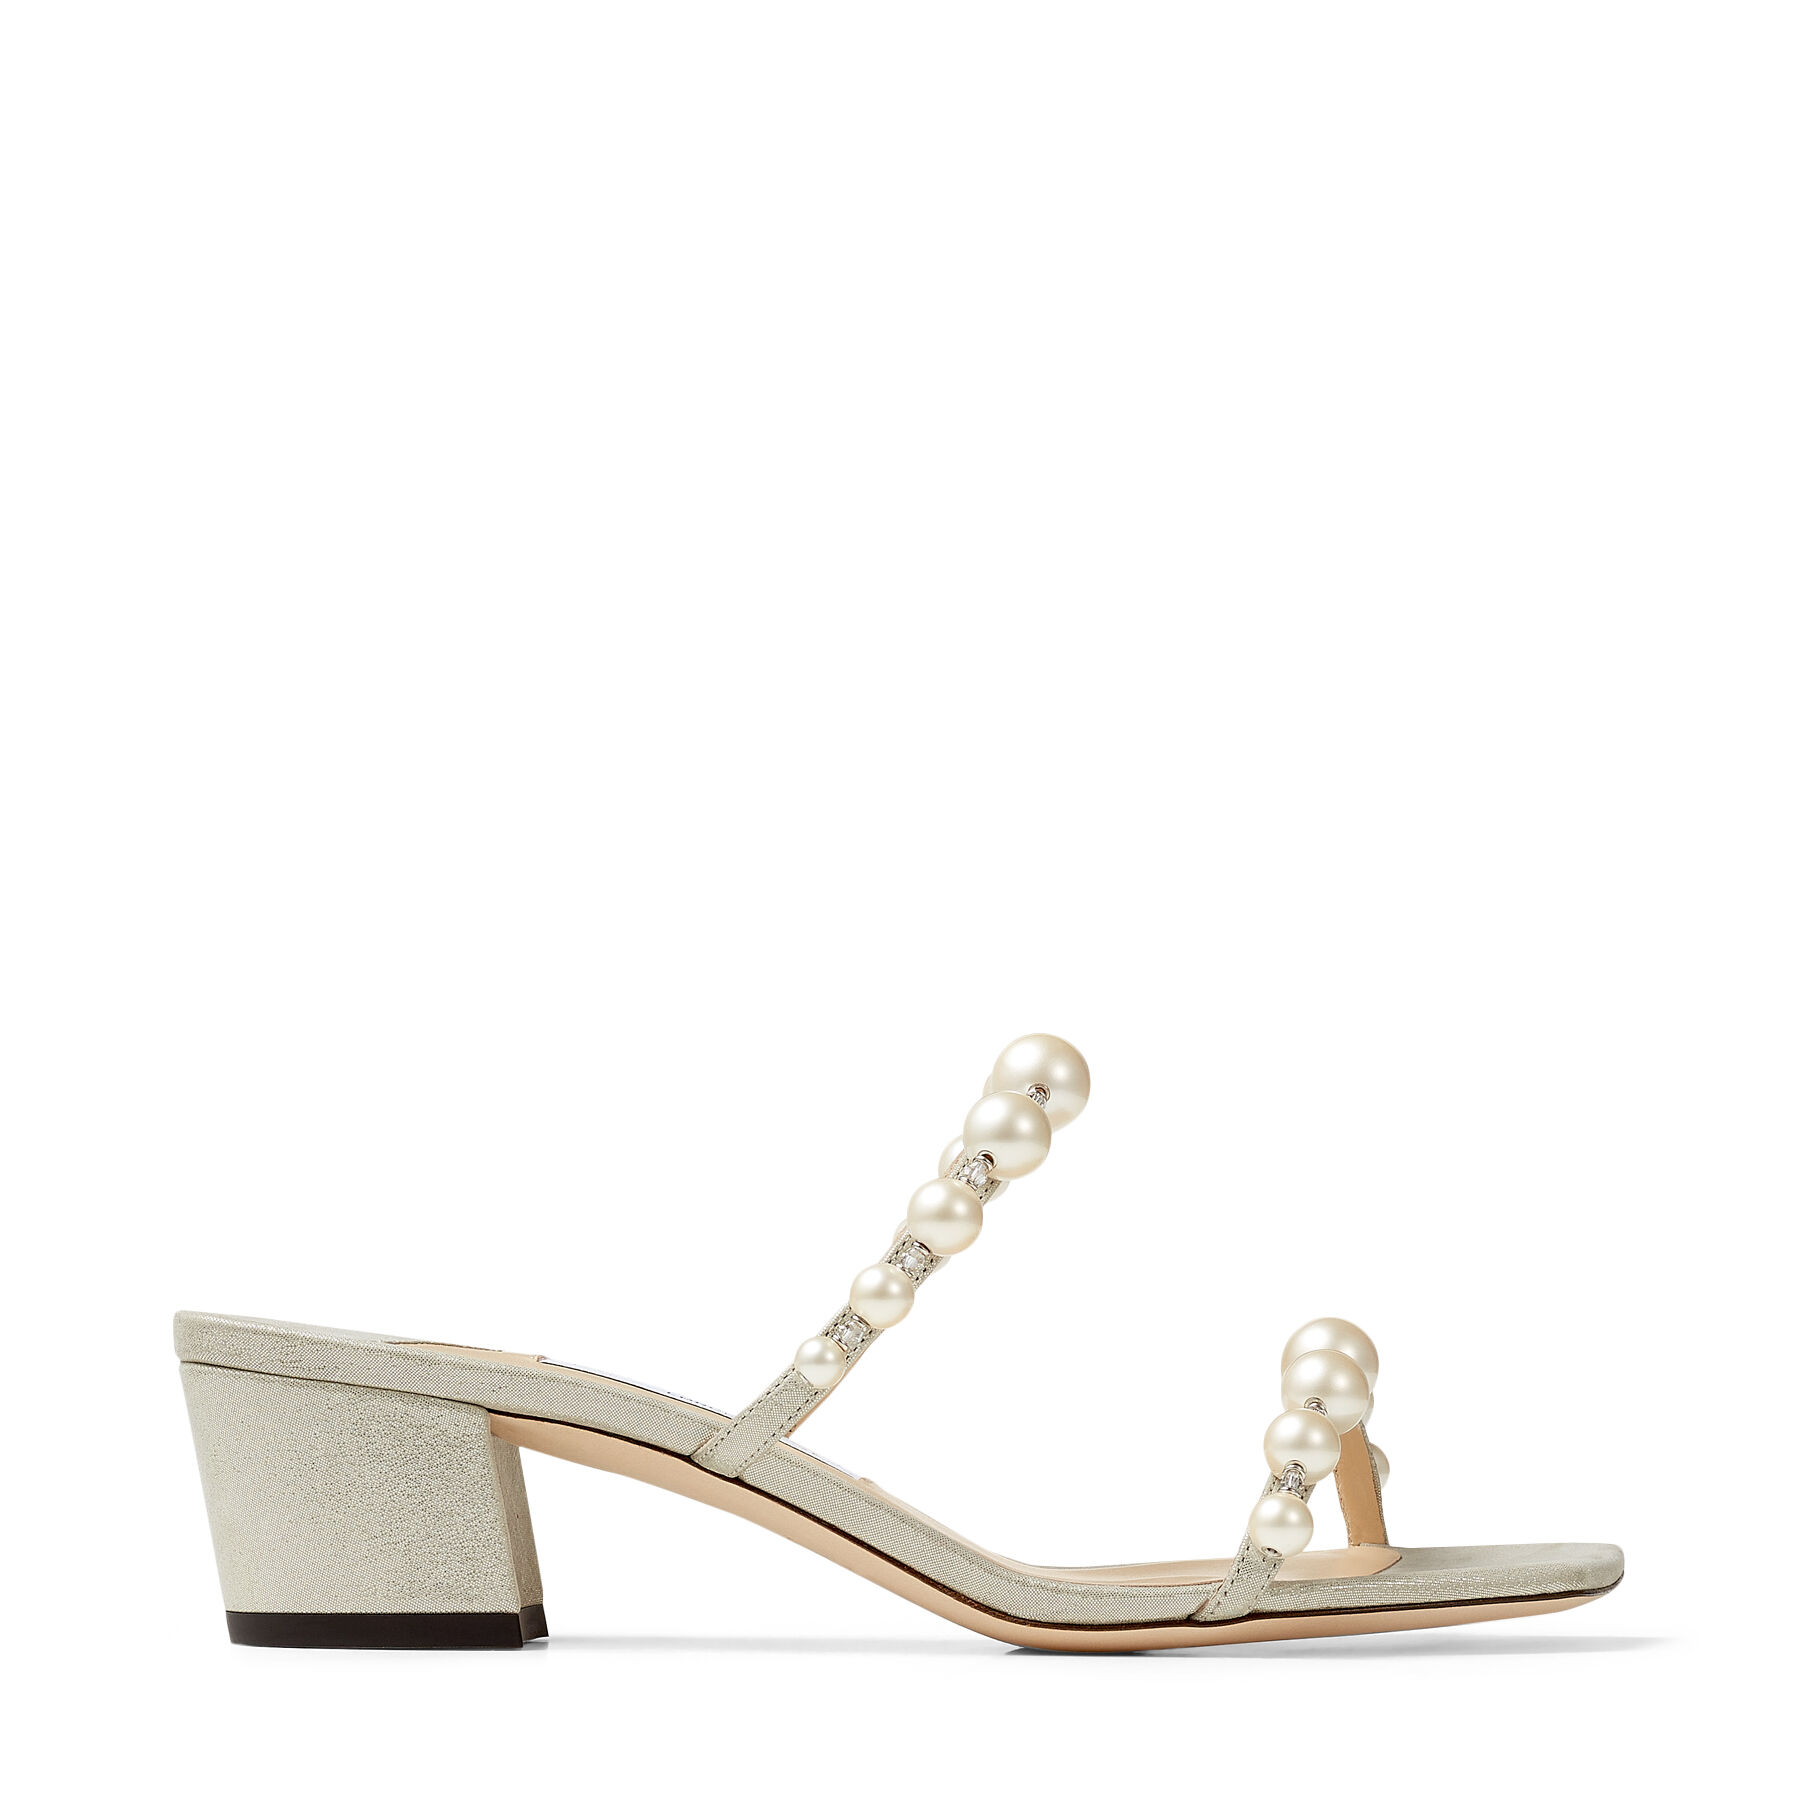 AMARA 45 - Champagne Shimmer Suede Mules with Pearl Embellishment